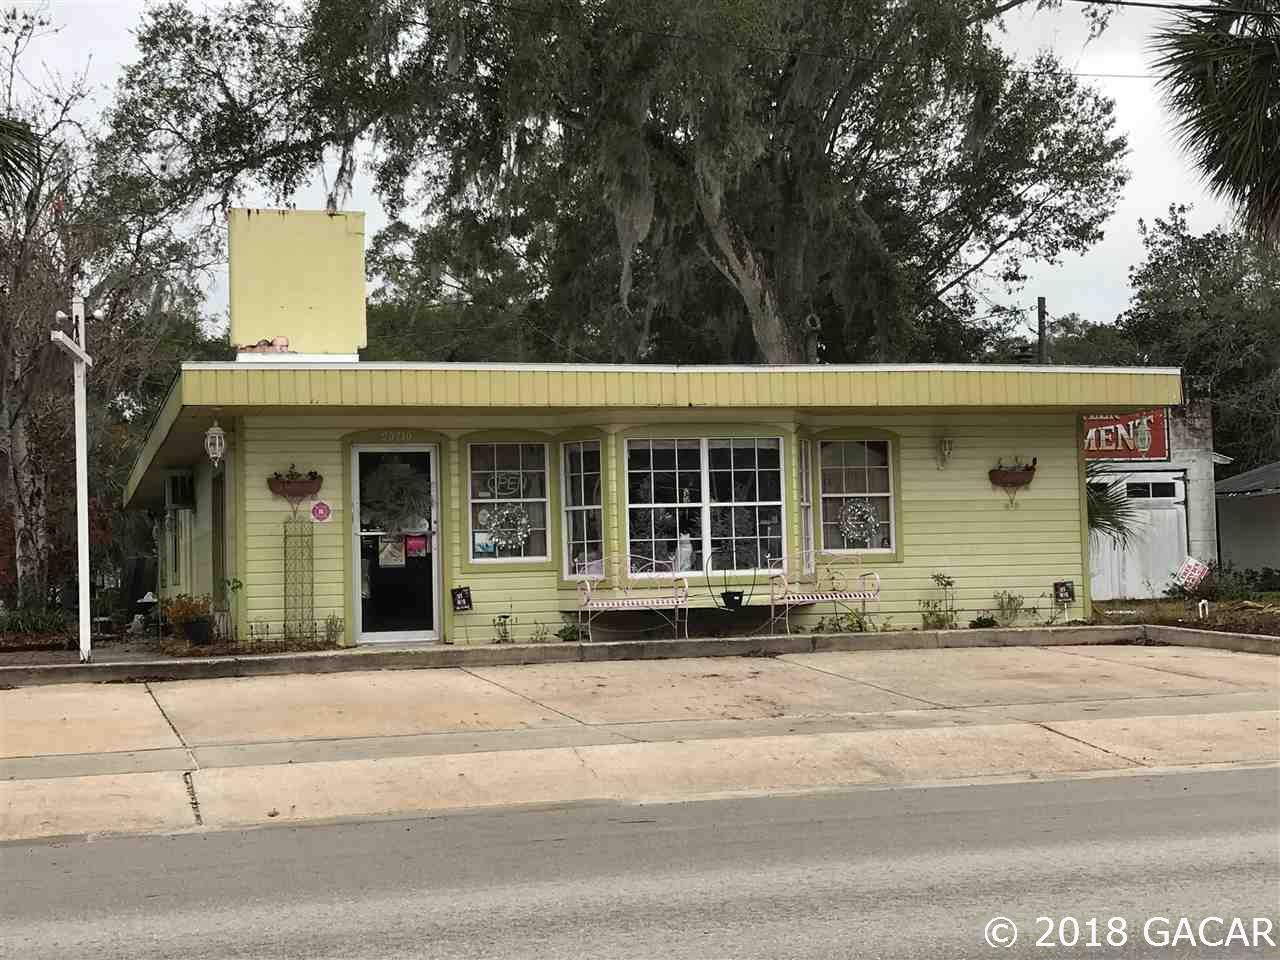 Commercial building located in Melrose, FL